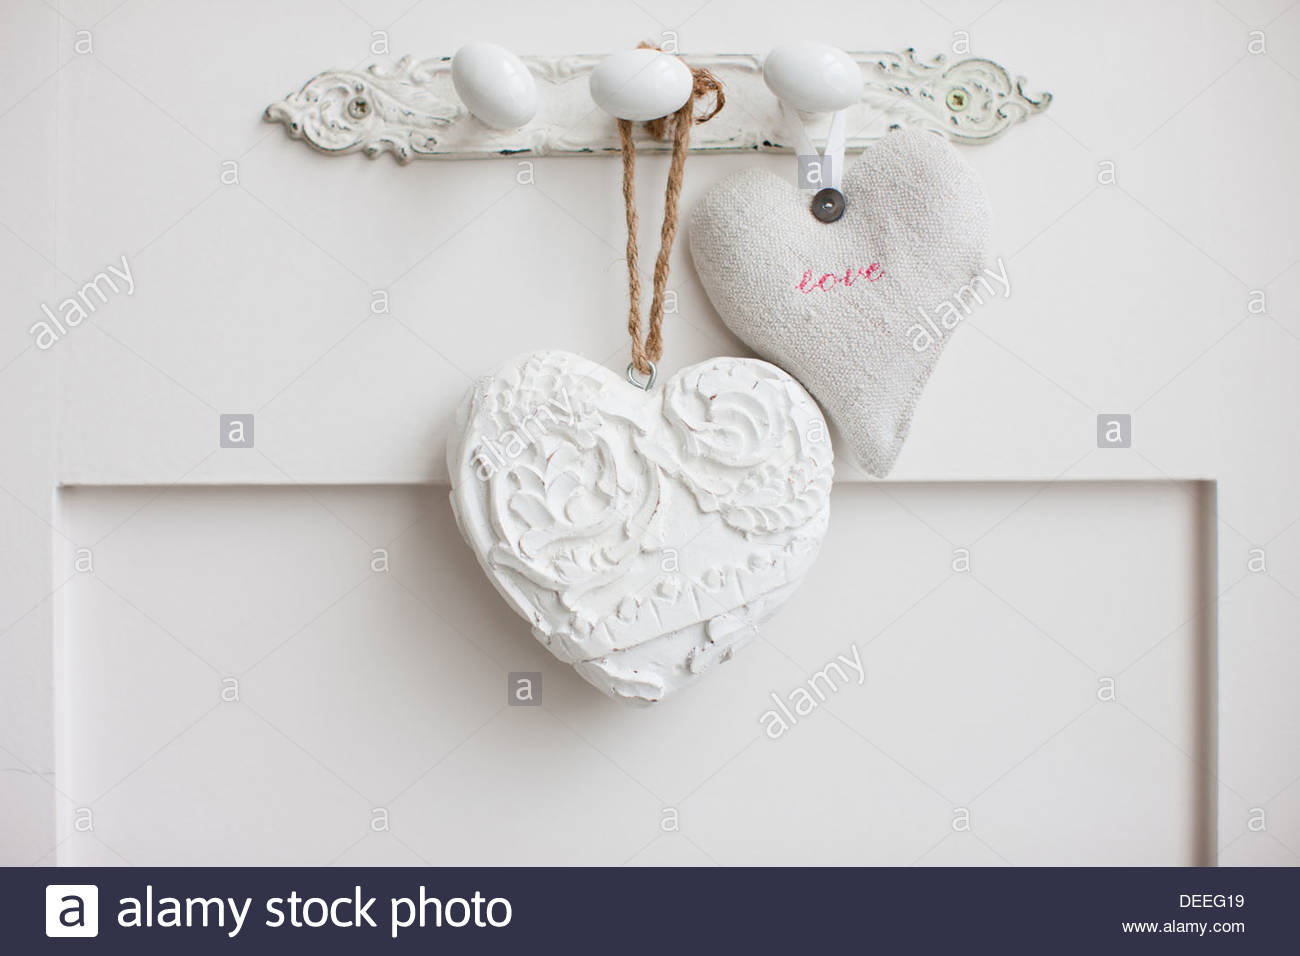 Wall hanging stockfotos wall hanging bilder alamy - Bilder an die wand hangen ...